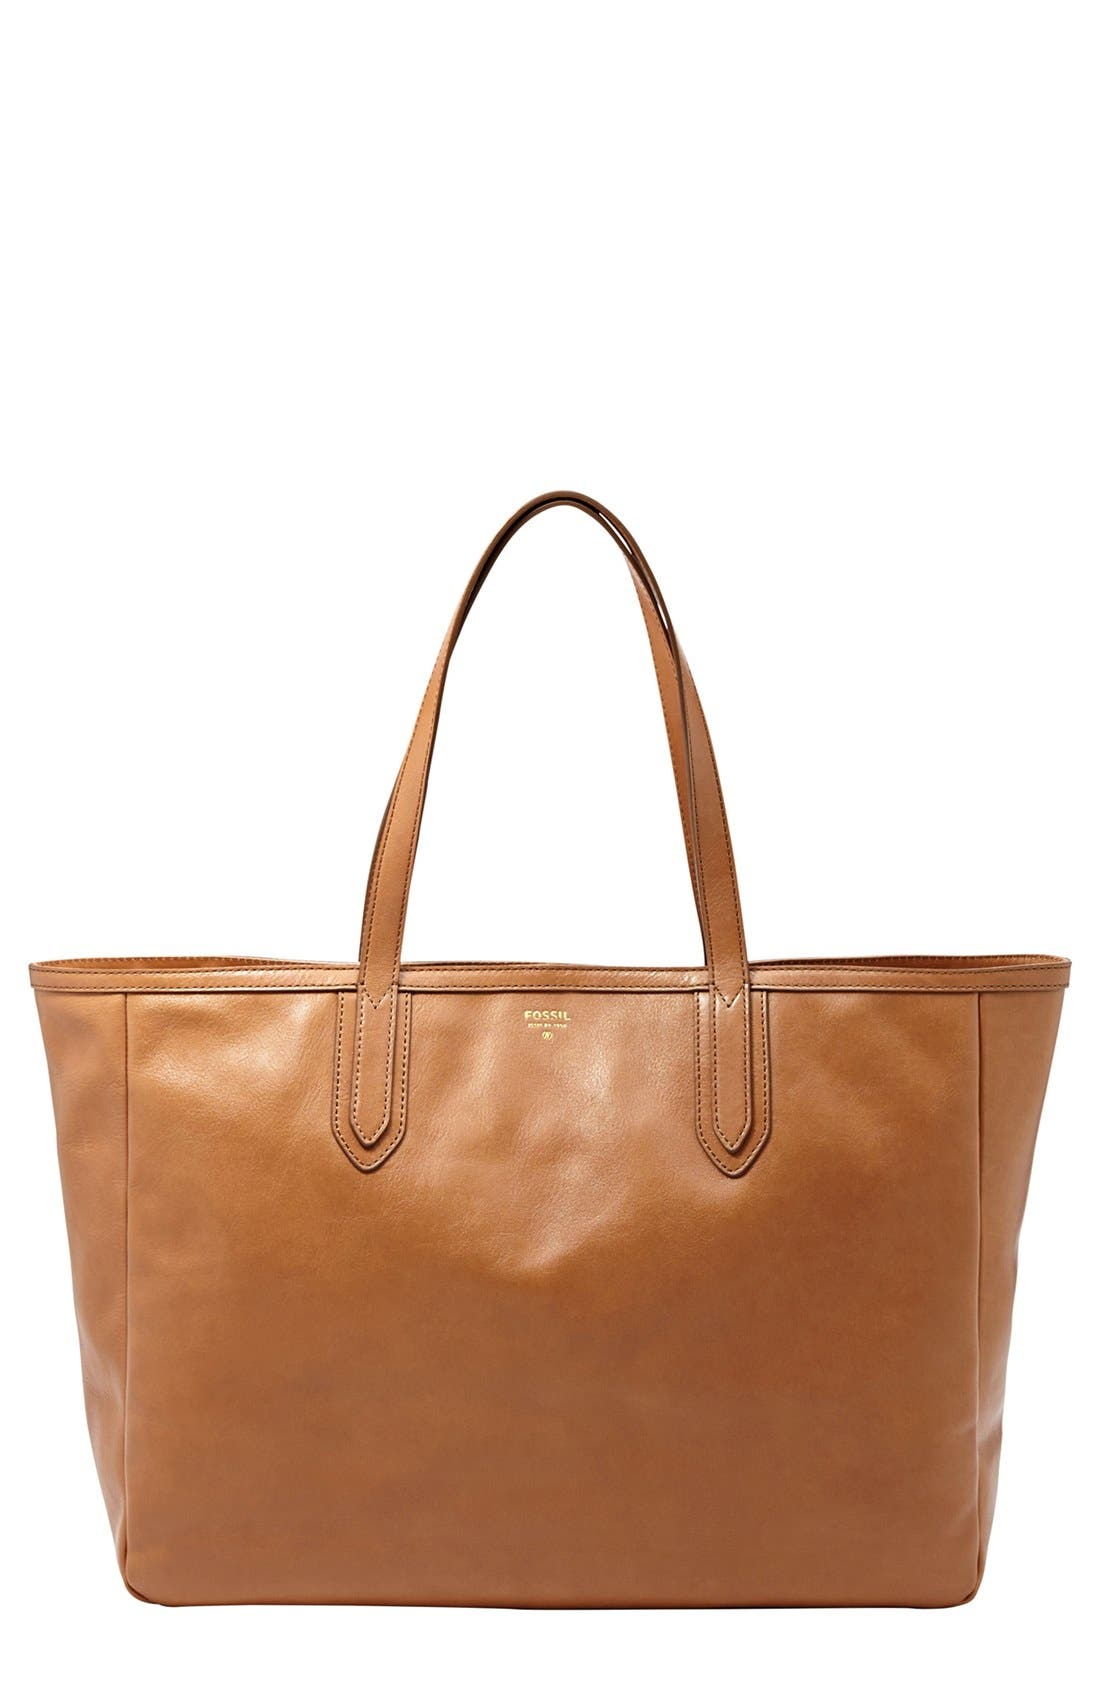 Main Image - Fossil 'Sydney' Tote